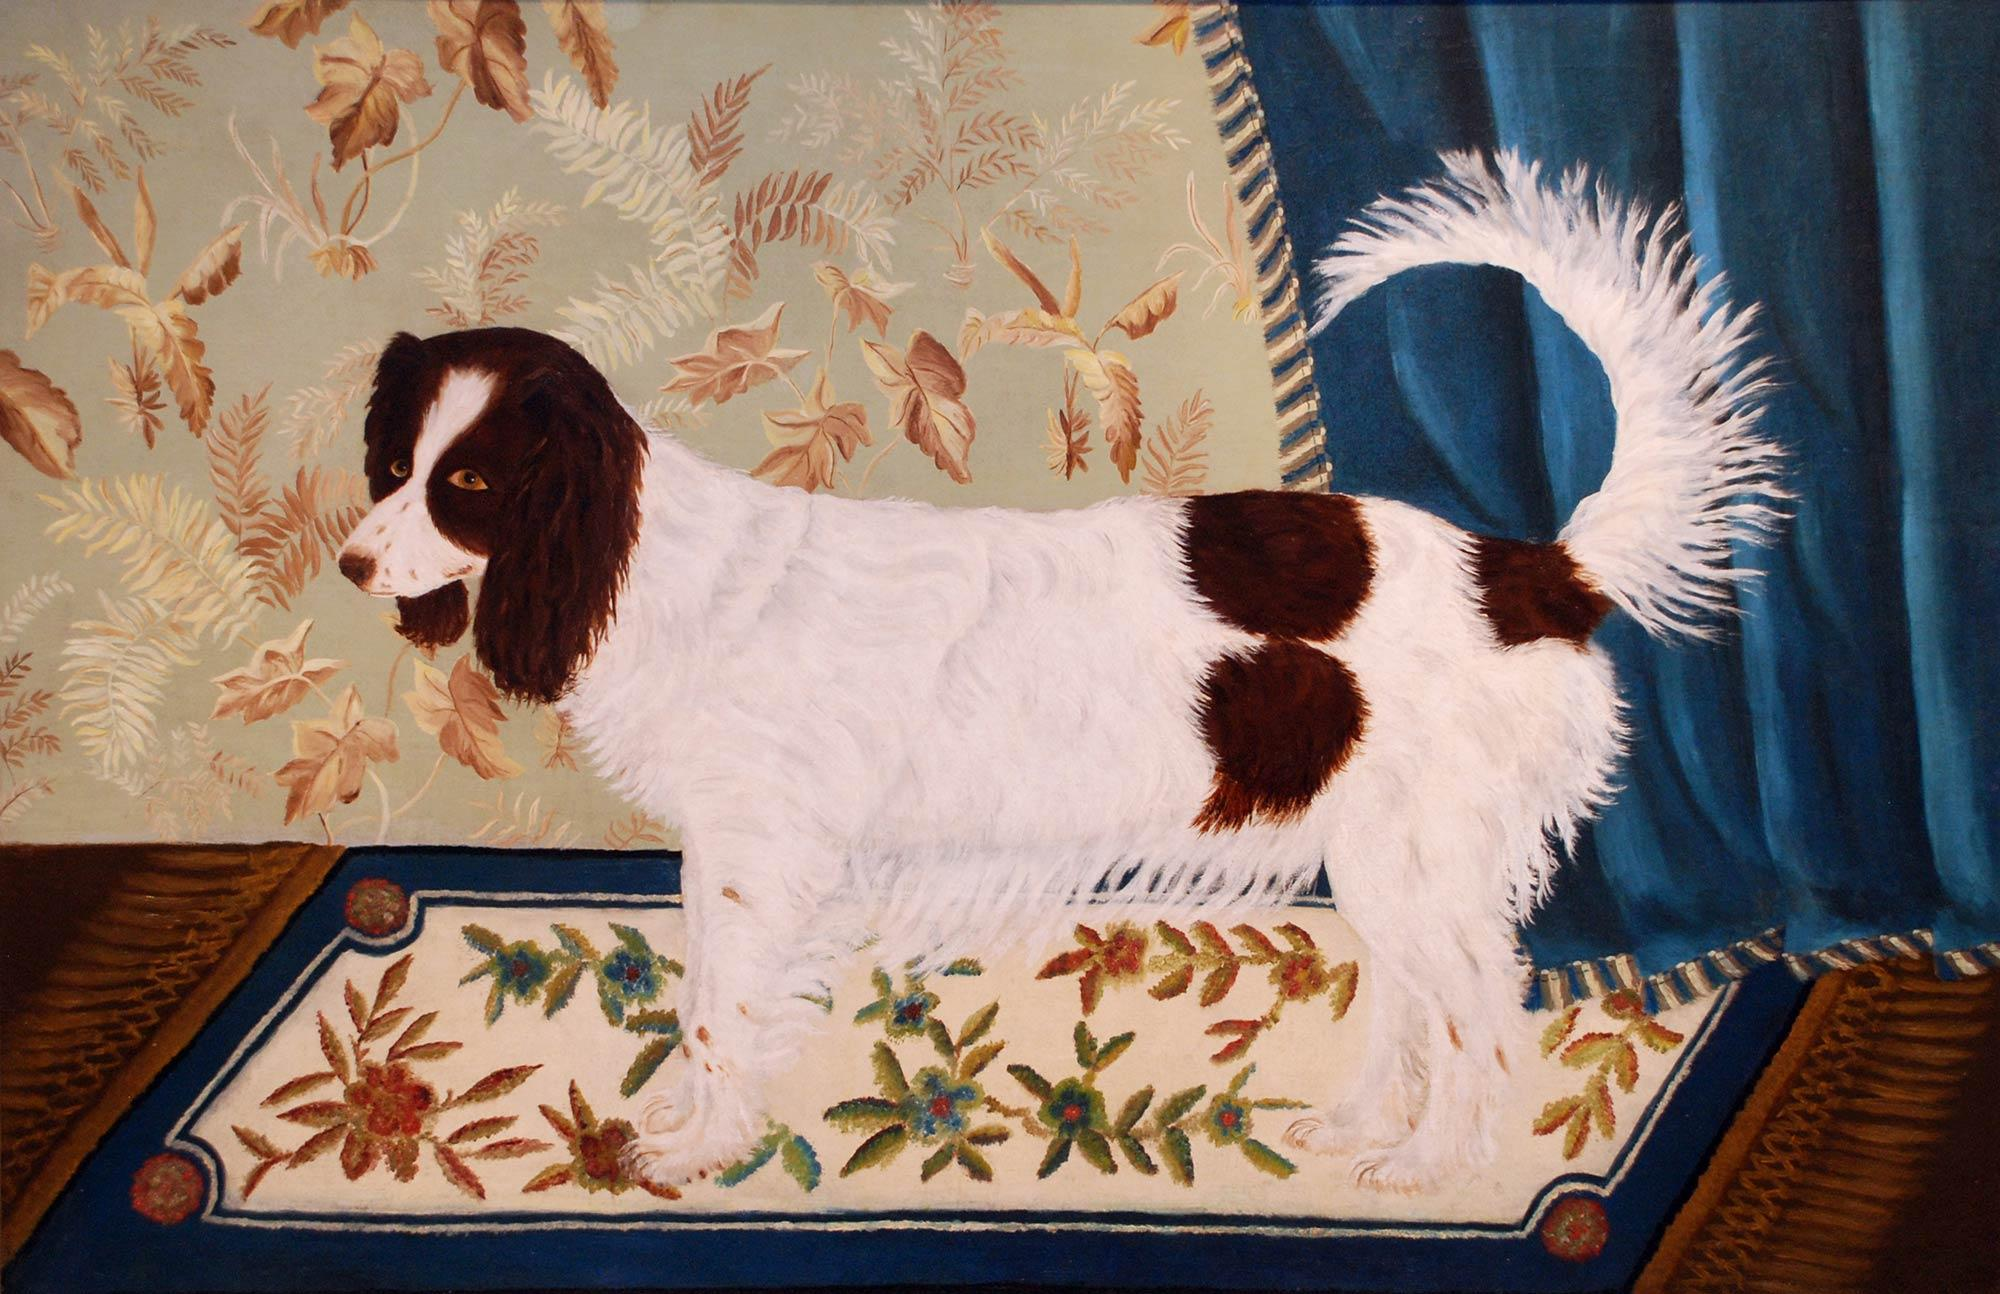 American, 19th century. Spaniel, ca. 1840. Oil on canvas, 29 x 45 in. Gift of Edgar William and Bernice Chrysler Garbisch, 1973.87